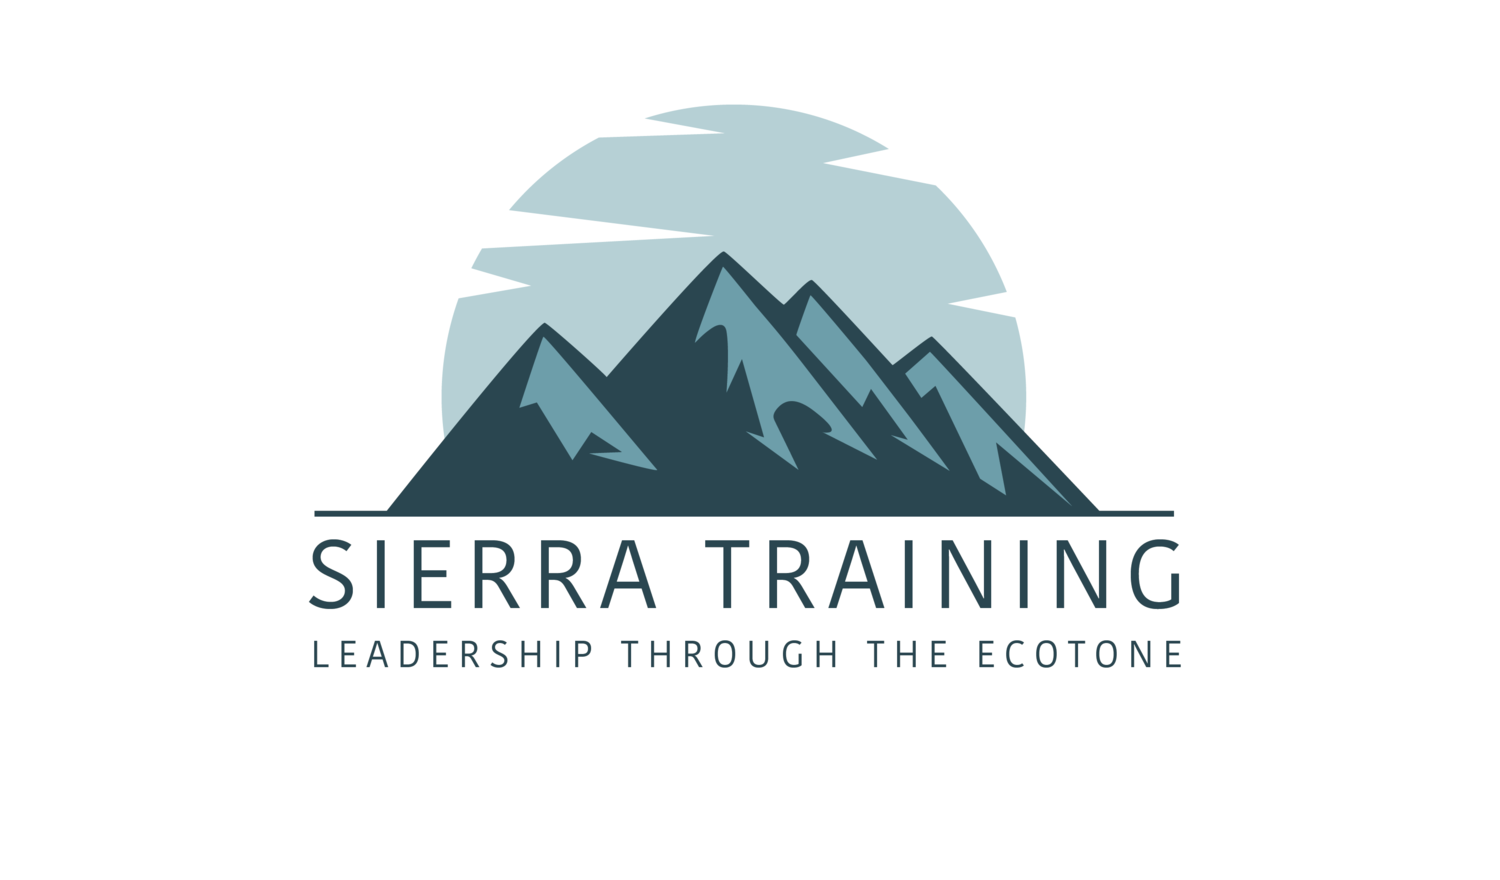 Sierra Training